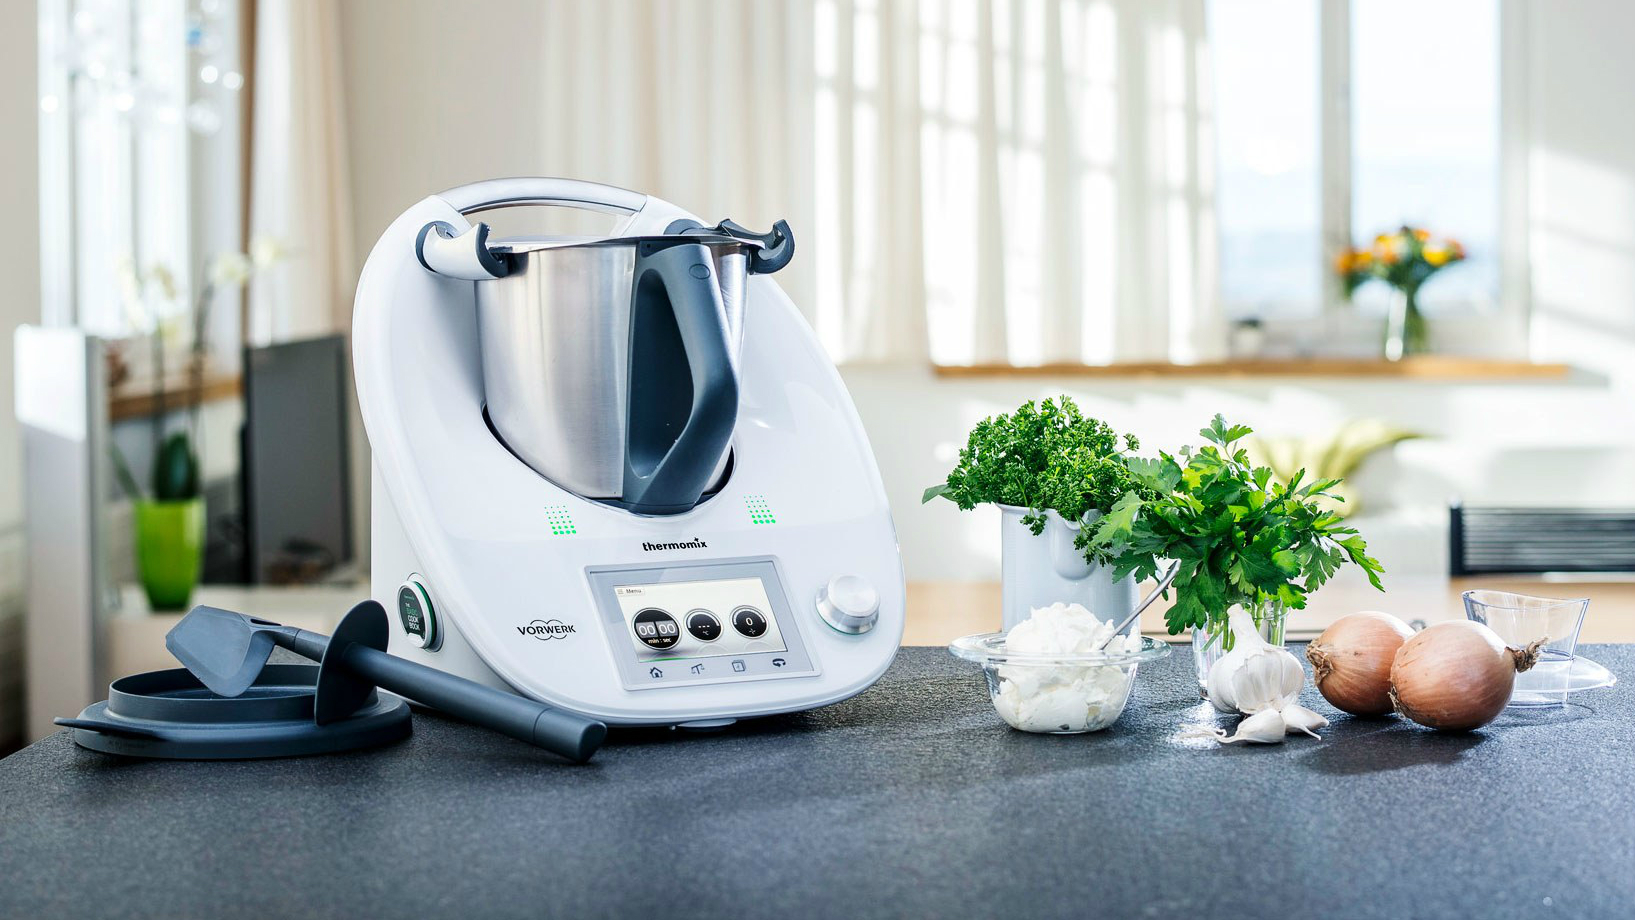 Charmant Thermomix, The Magical German Do It All Kitchen Appliance, Is Here To  Conquer America